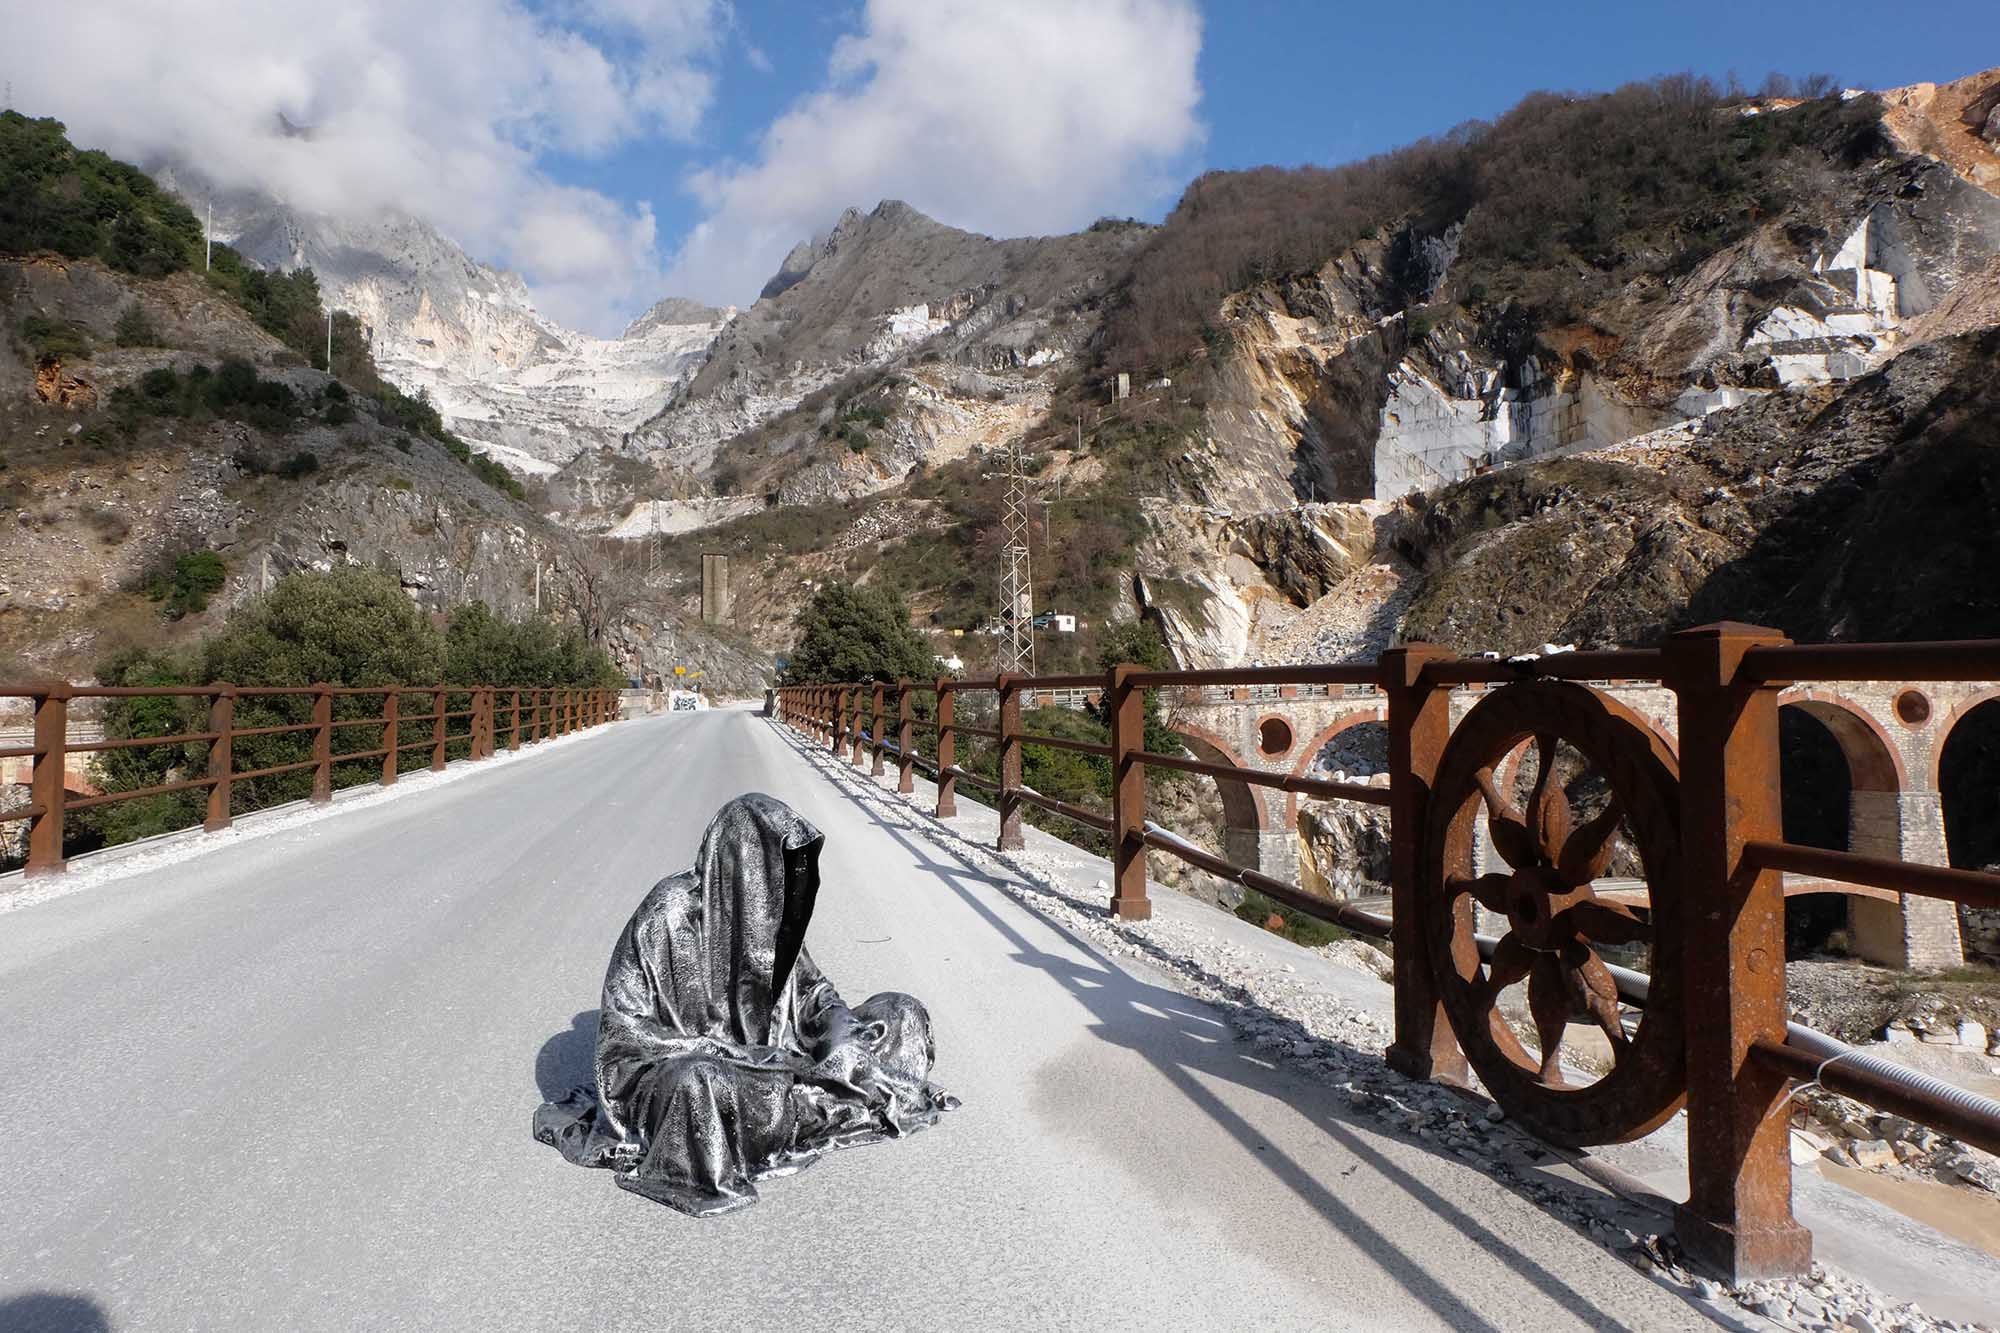 guardians of time manfred kili kielnhofer modern sculpture contemporary fine art design arts statue faceless religion stone marble carrara 1295